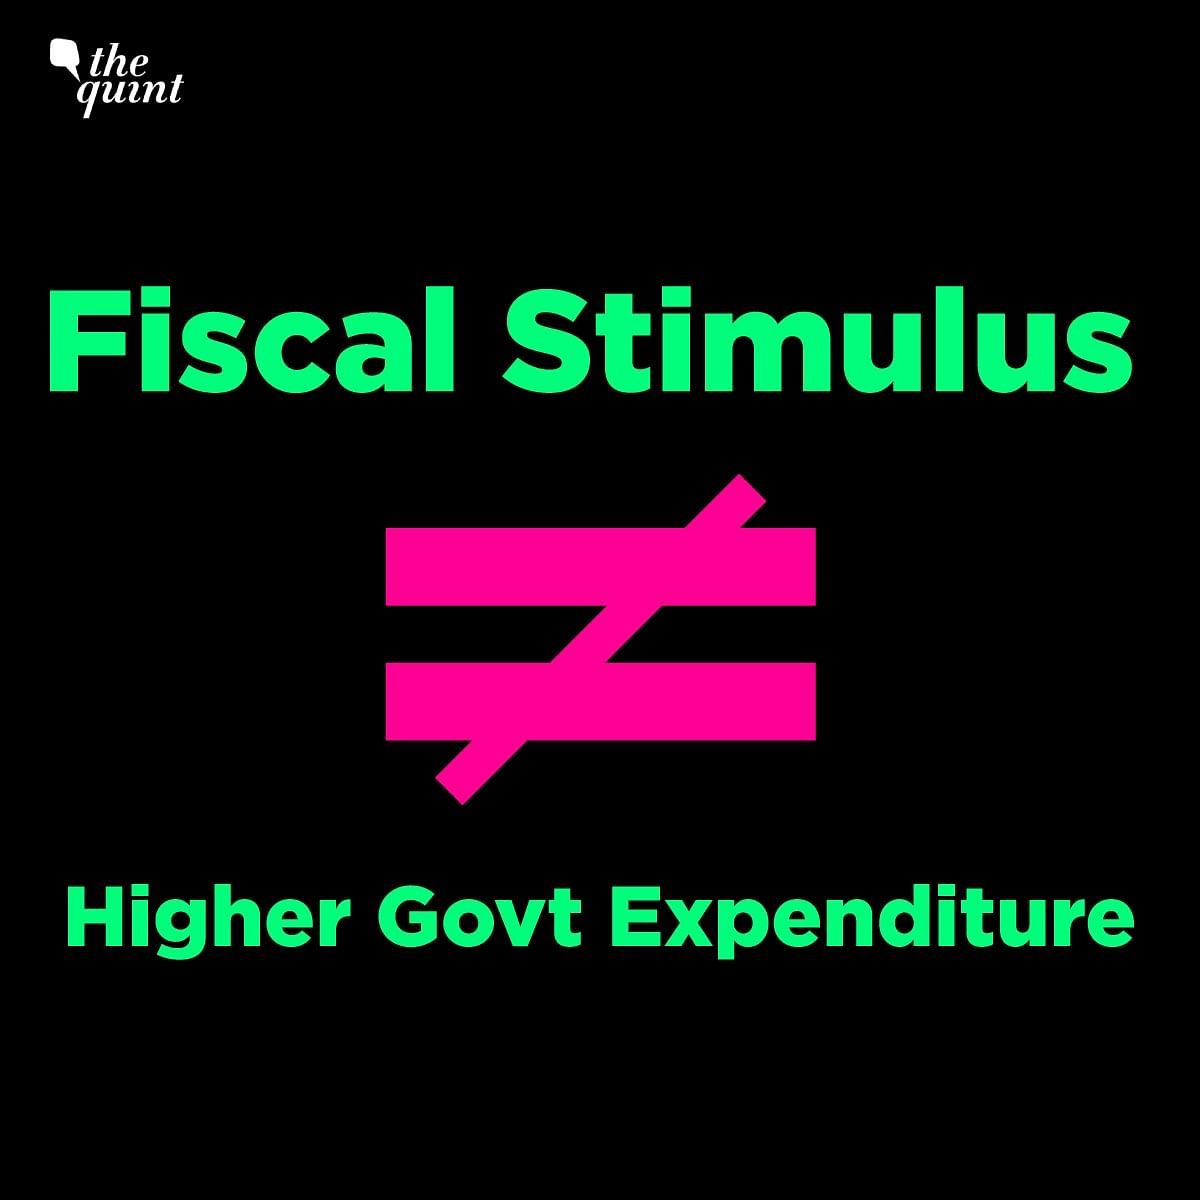 Budget 2021: Why Increased Govt Expenditure Is 'Doomed' to Failure